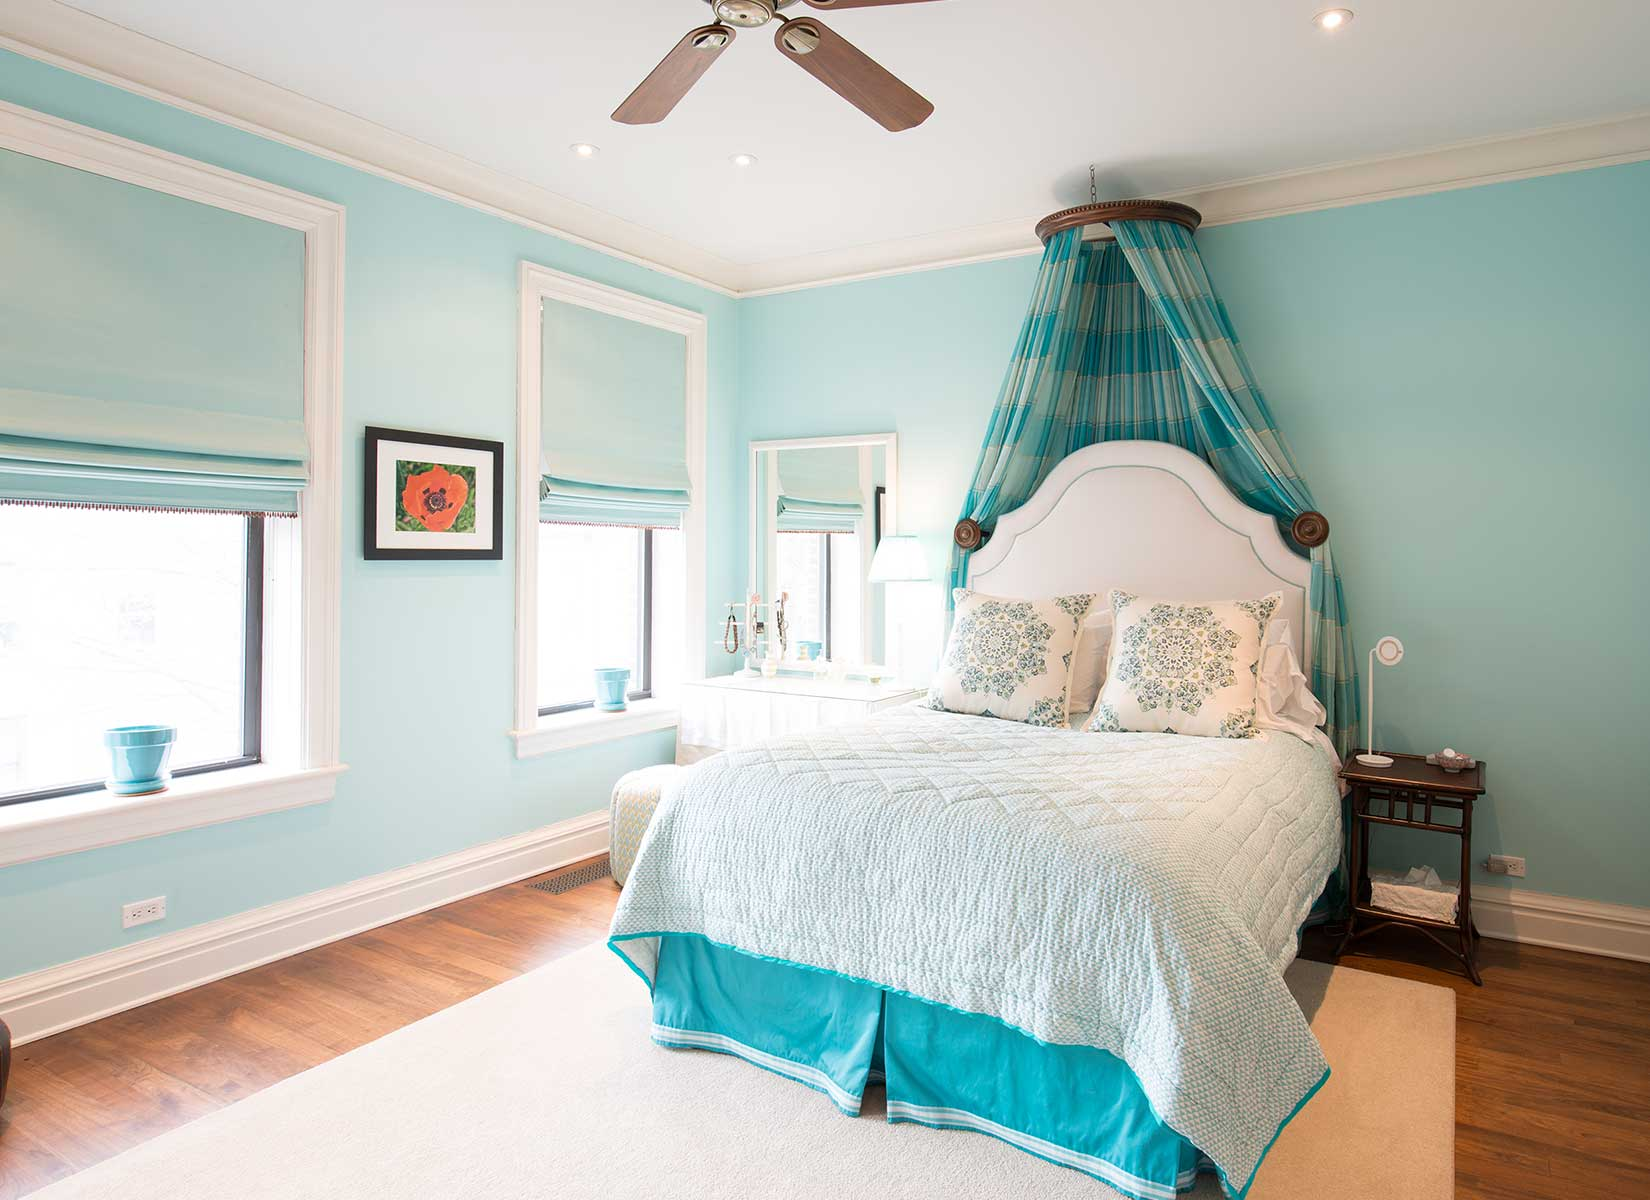 The spacious front bedroom has a full en suite bathroom with a soaking tub and marble surround.